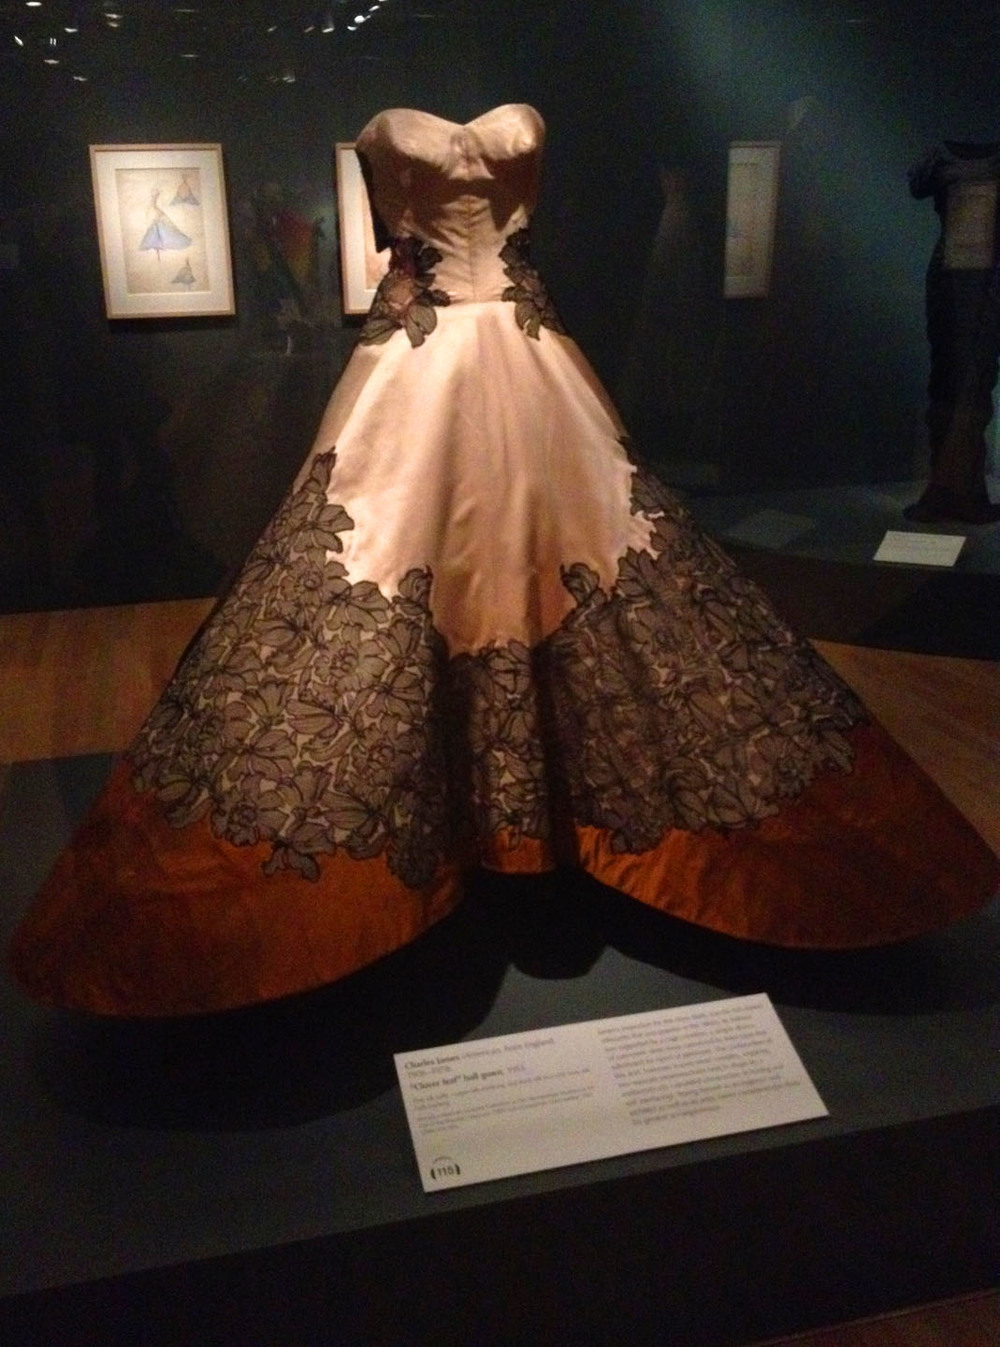 James-clover-leaf-ball-gown.jpg